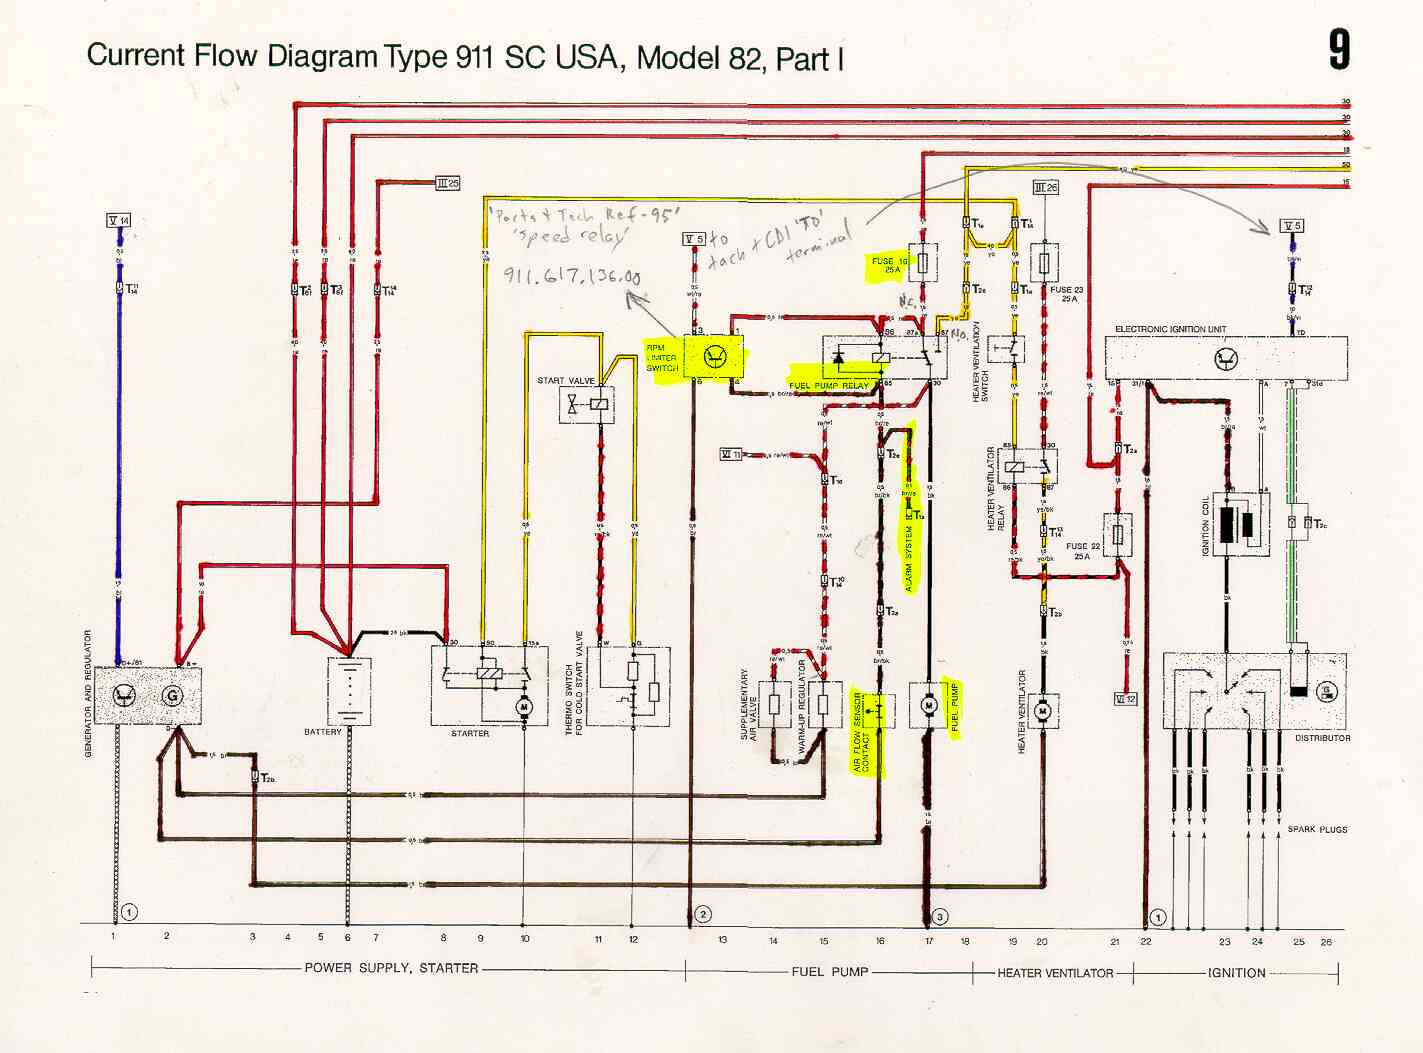 1987 Porsche 911 Wiring Diagram Simple 69 Gmc Pickup Diagrams Fuel Pump Library 1980